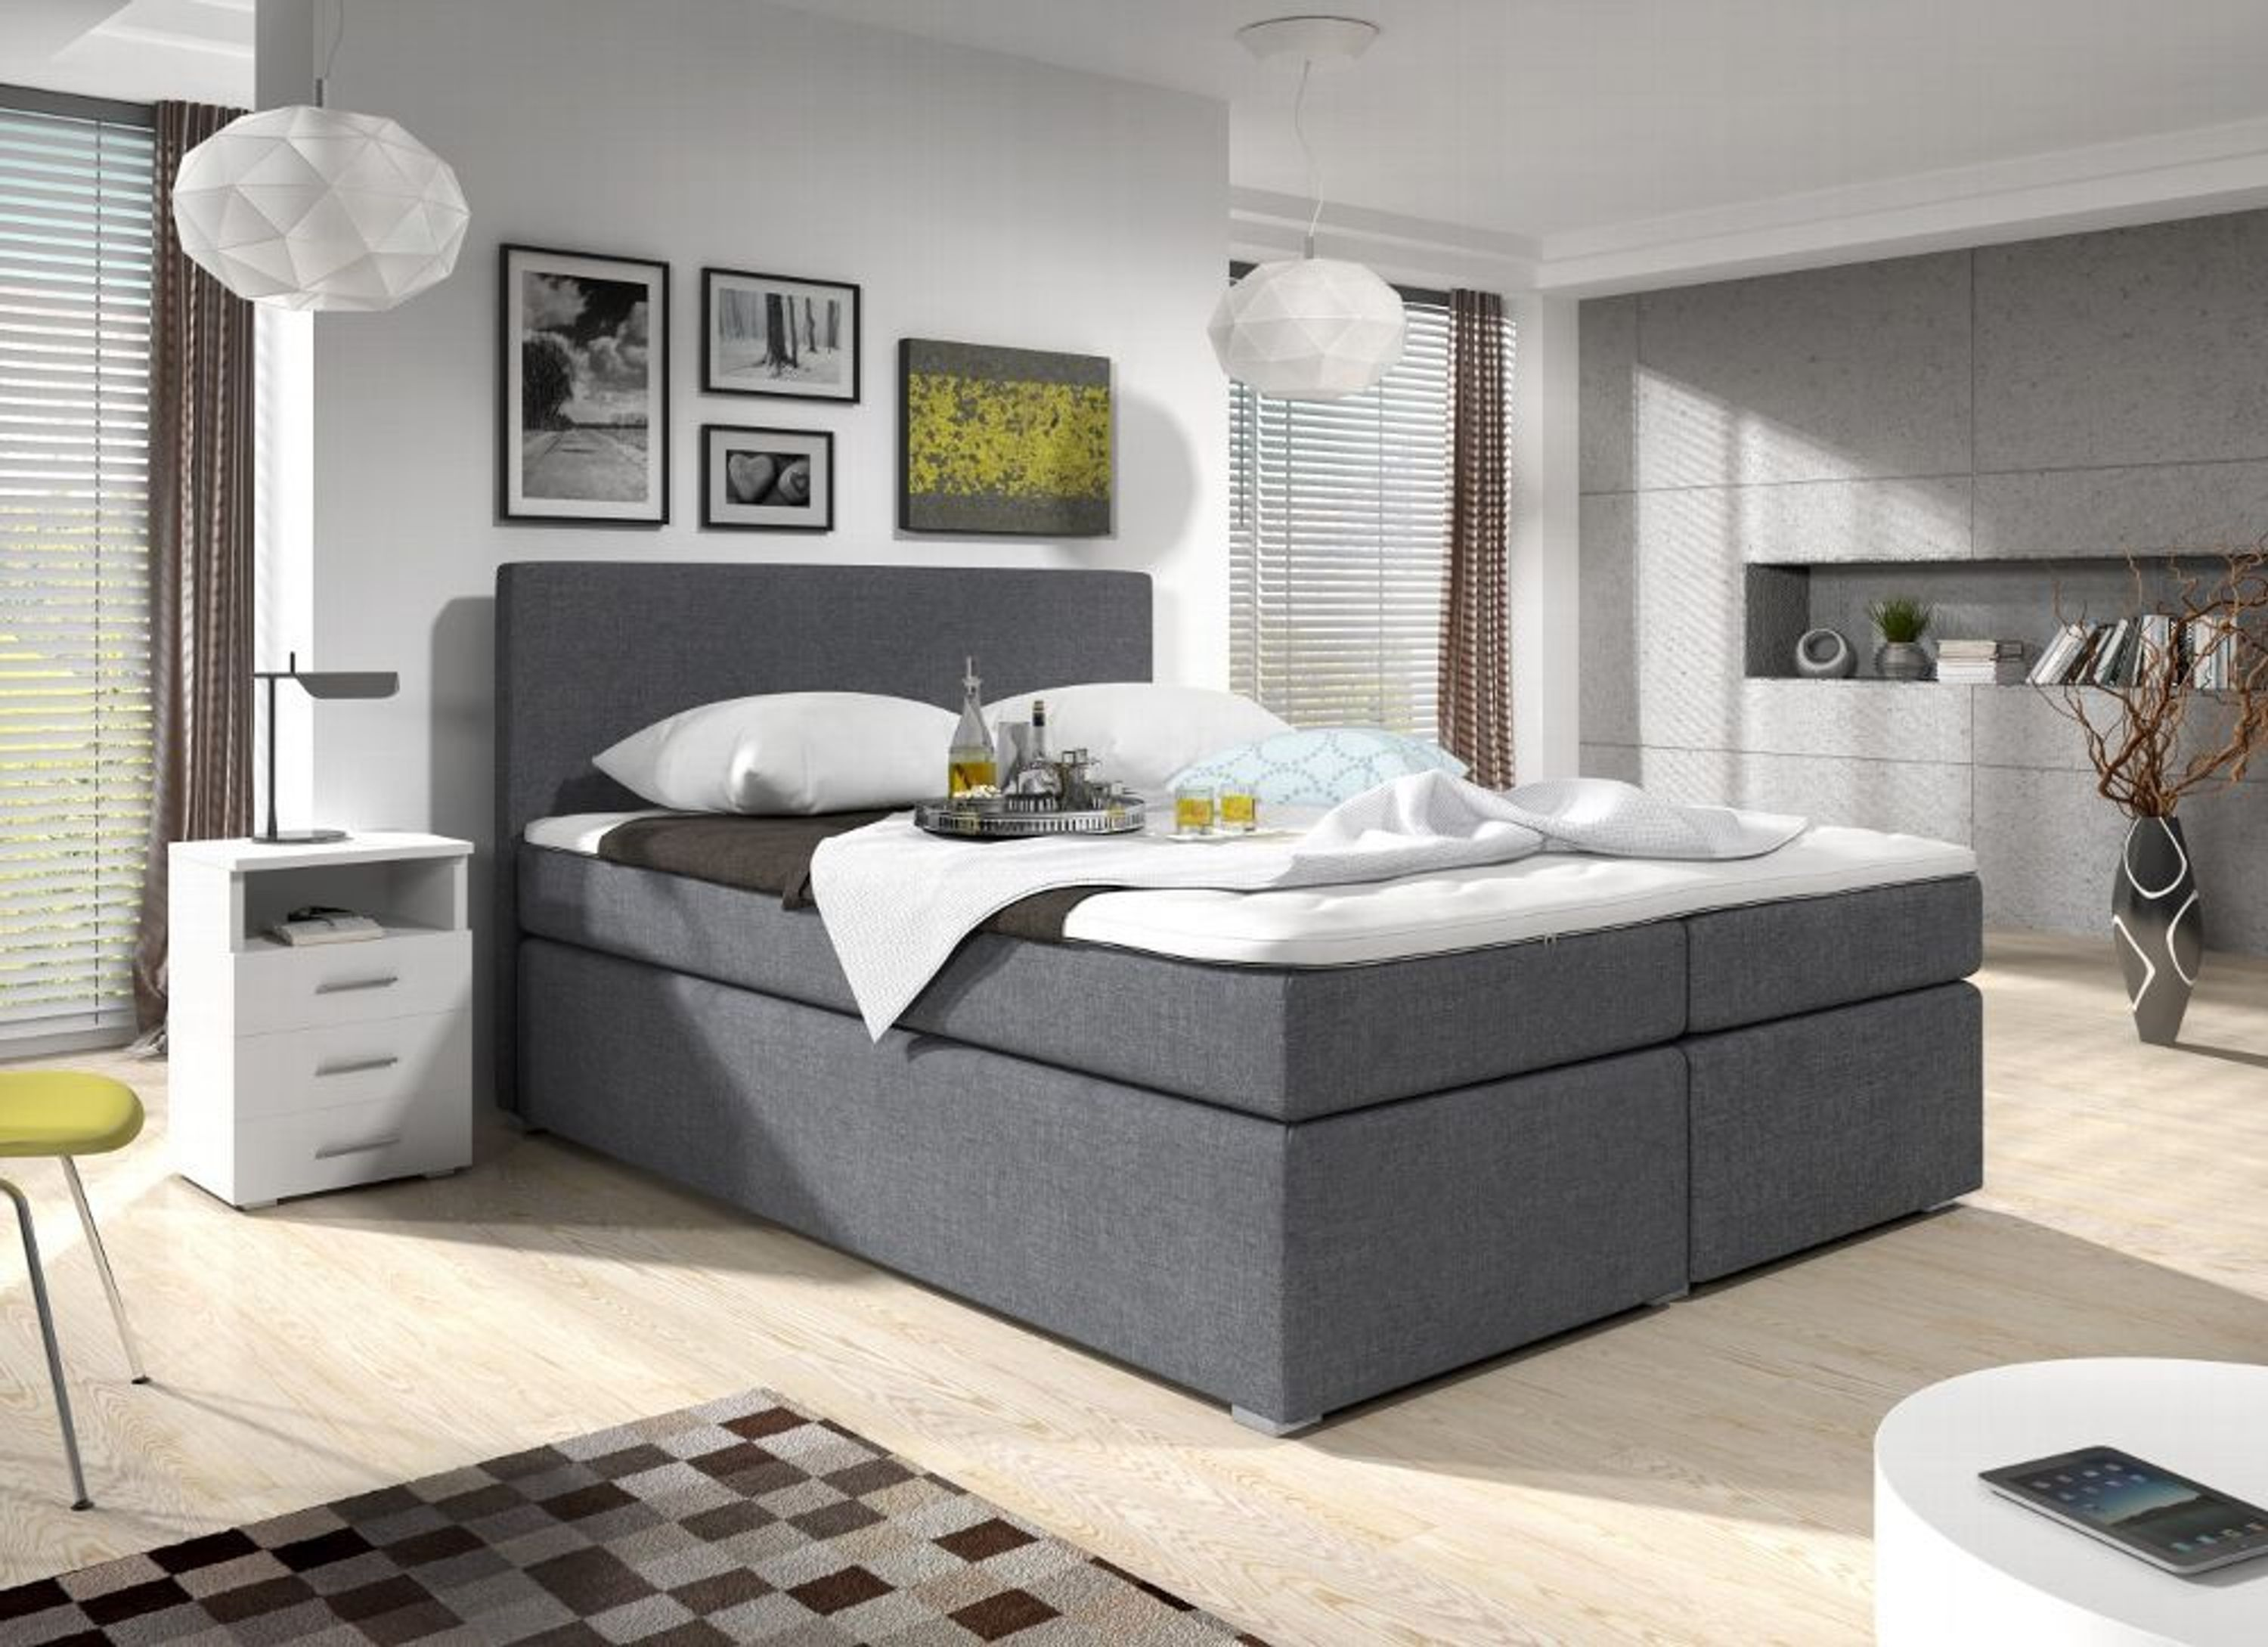 boxspringbett grau swing mit bettkasten 140x200 visco topper kaufen bei. Black Bedroom Furniture Sets. Home Design Ideas